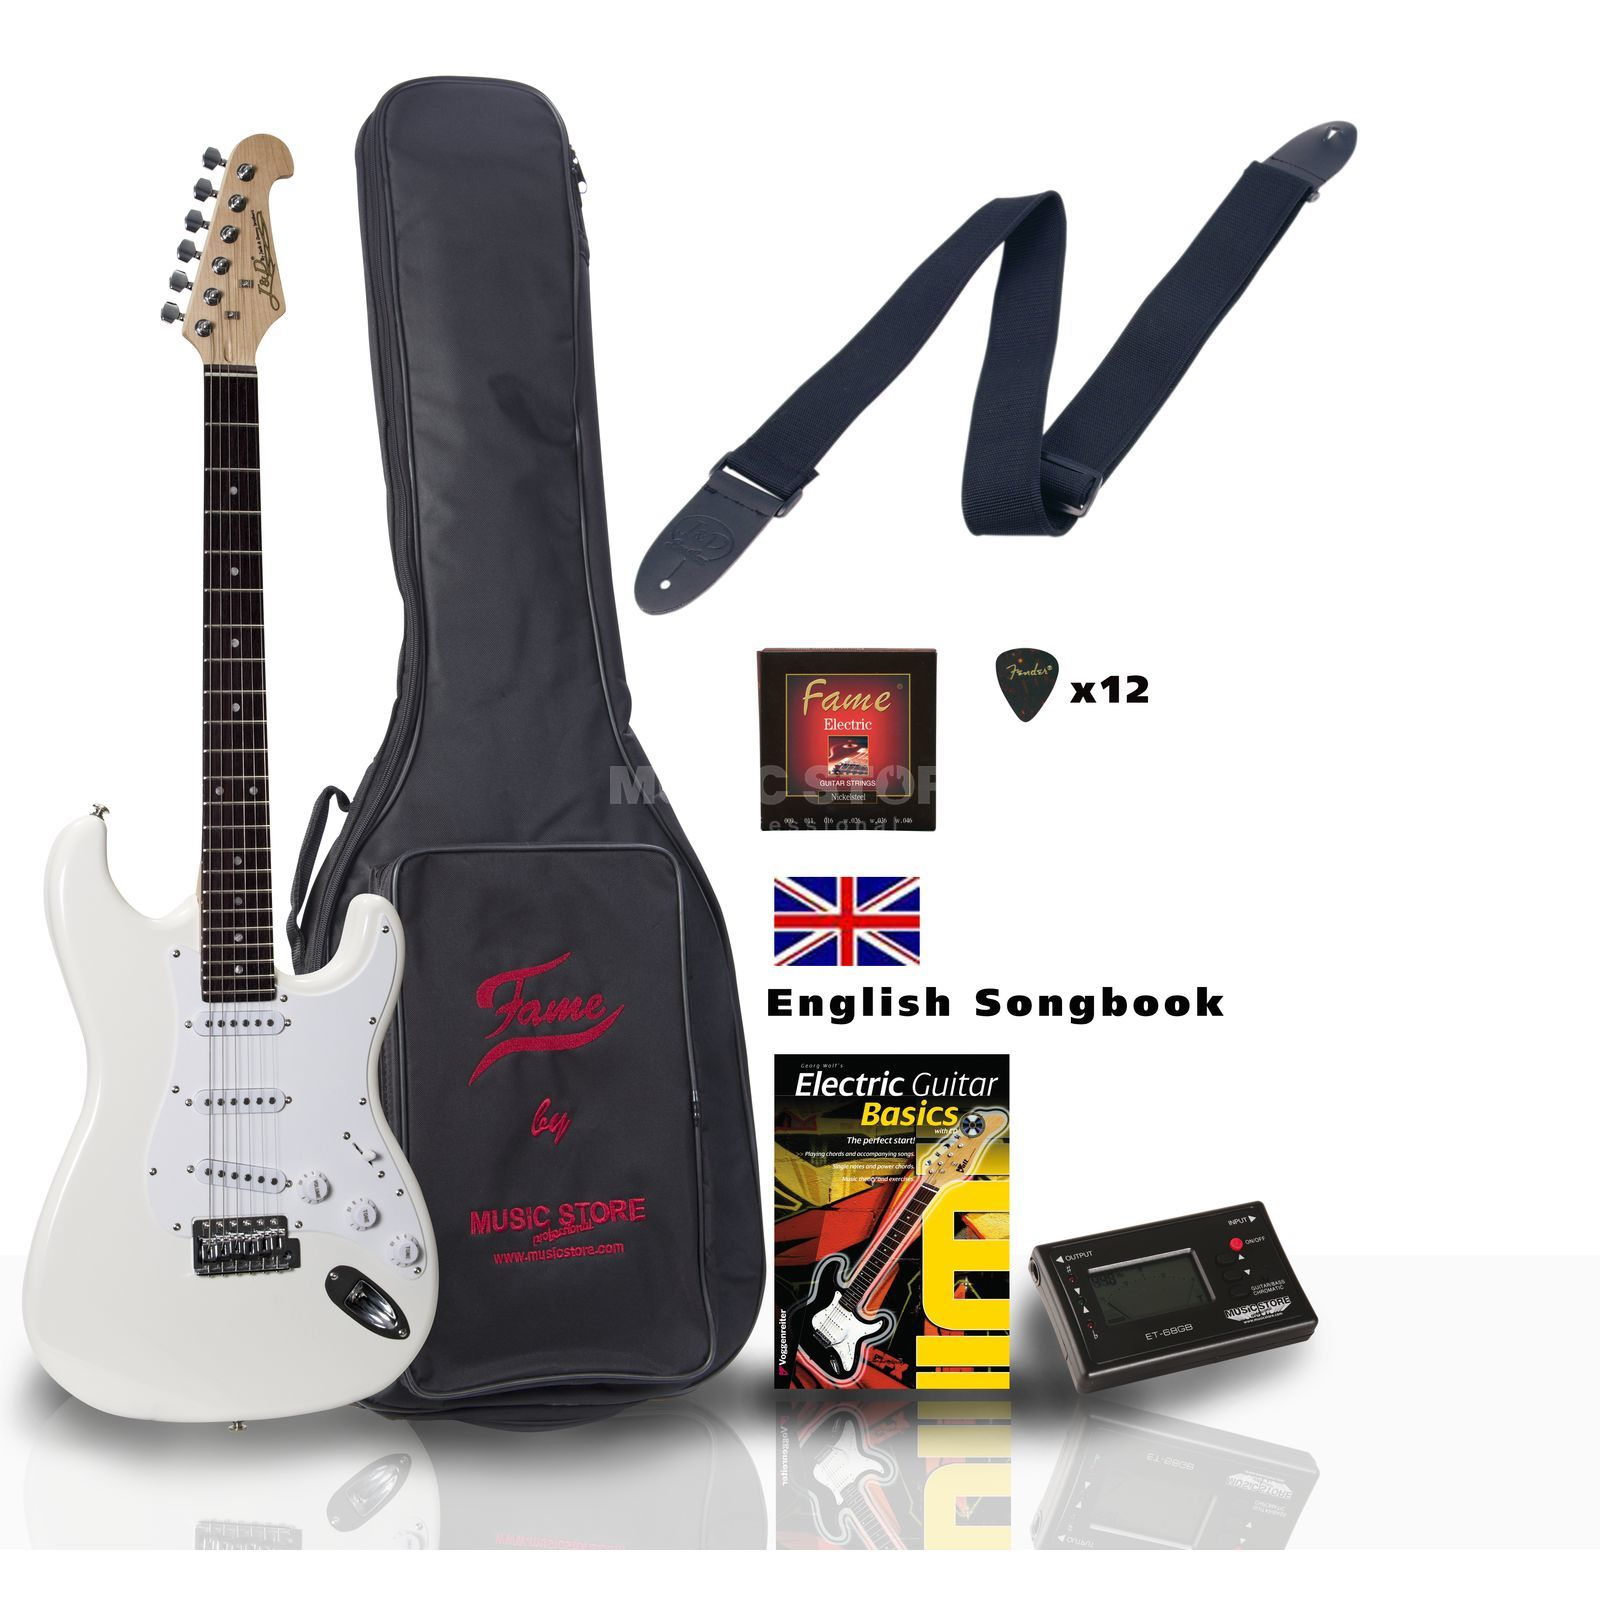 SET Jack Danny ST Rock WH ENGLISH +Bag+Strap+Tuner+Songbook etc. Produktbillede